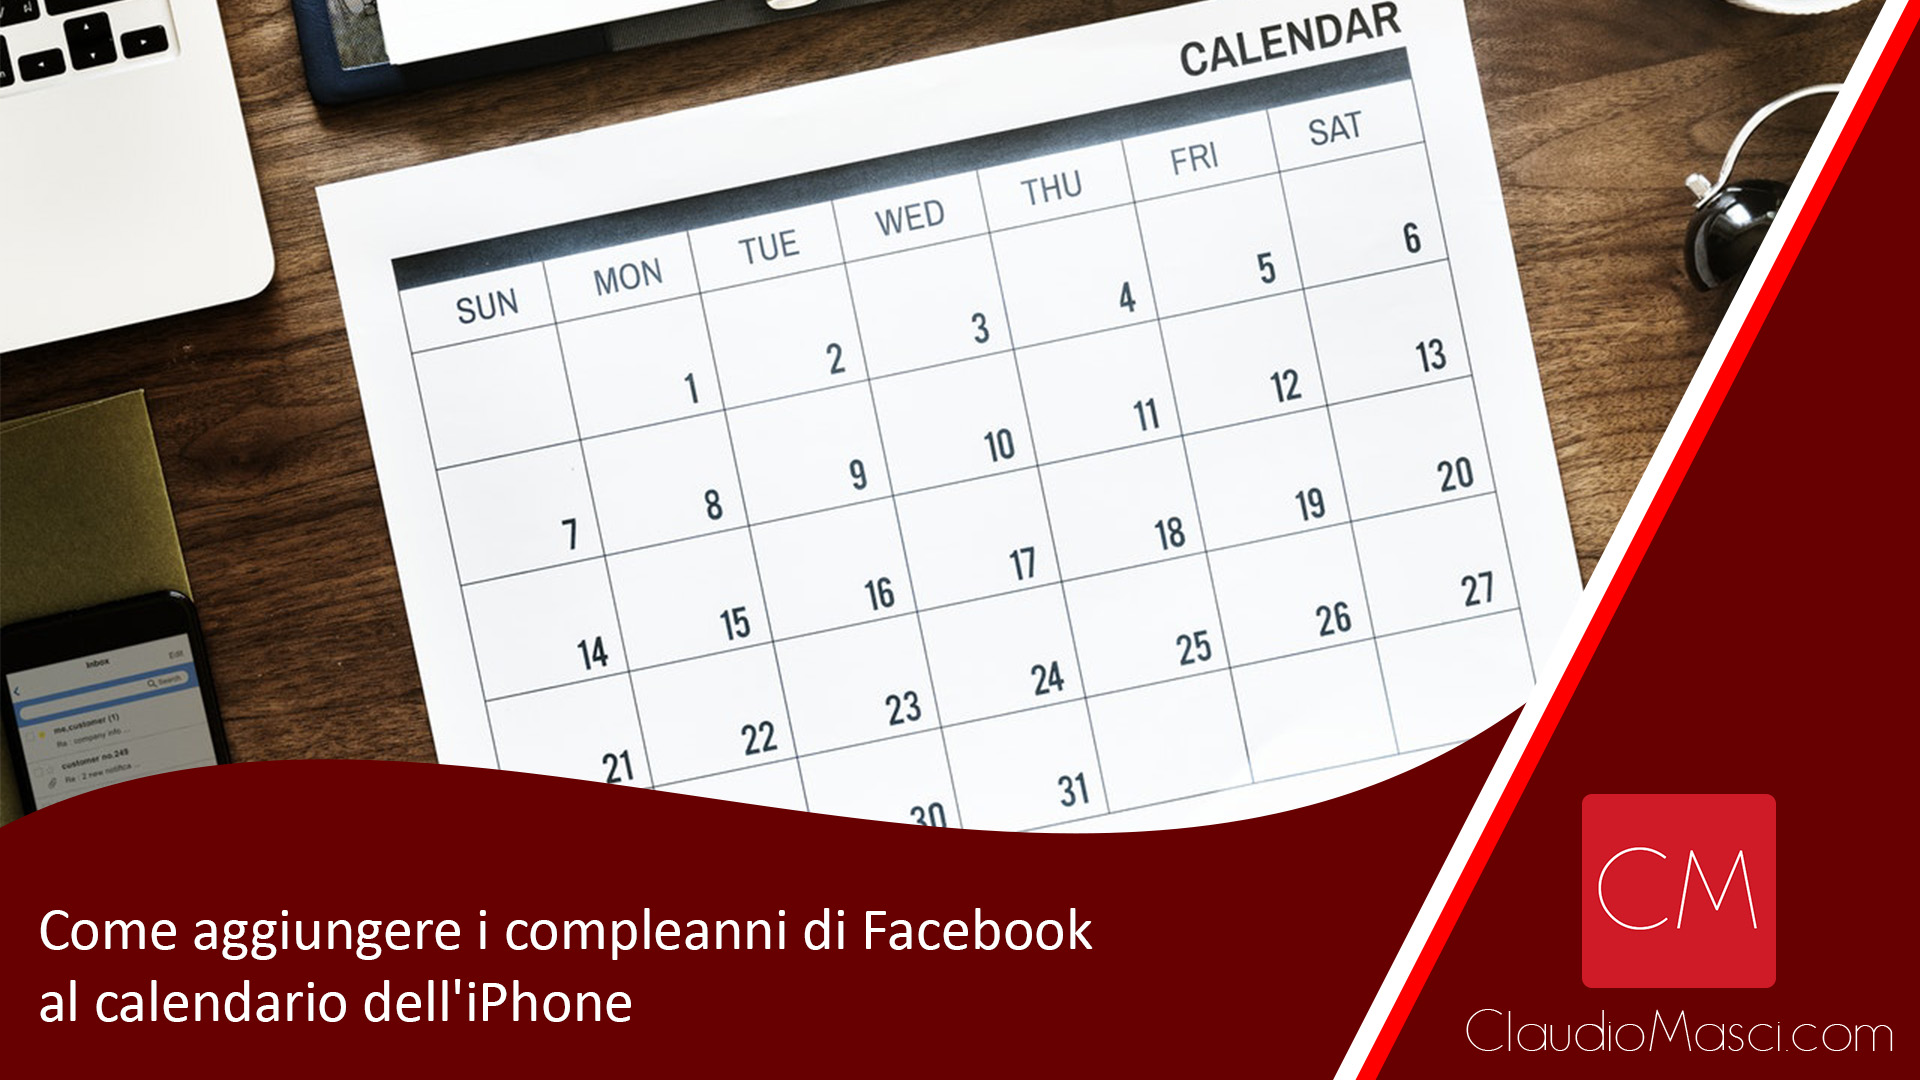 Come aggiungere i compleanni di Facebook al calendario dell'iPhone